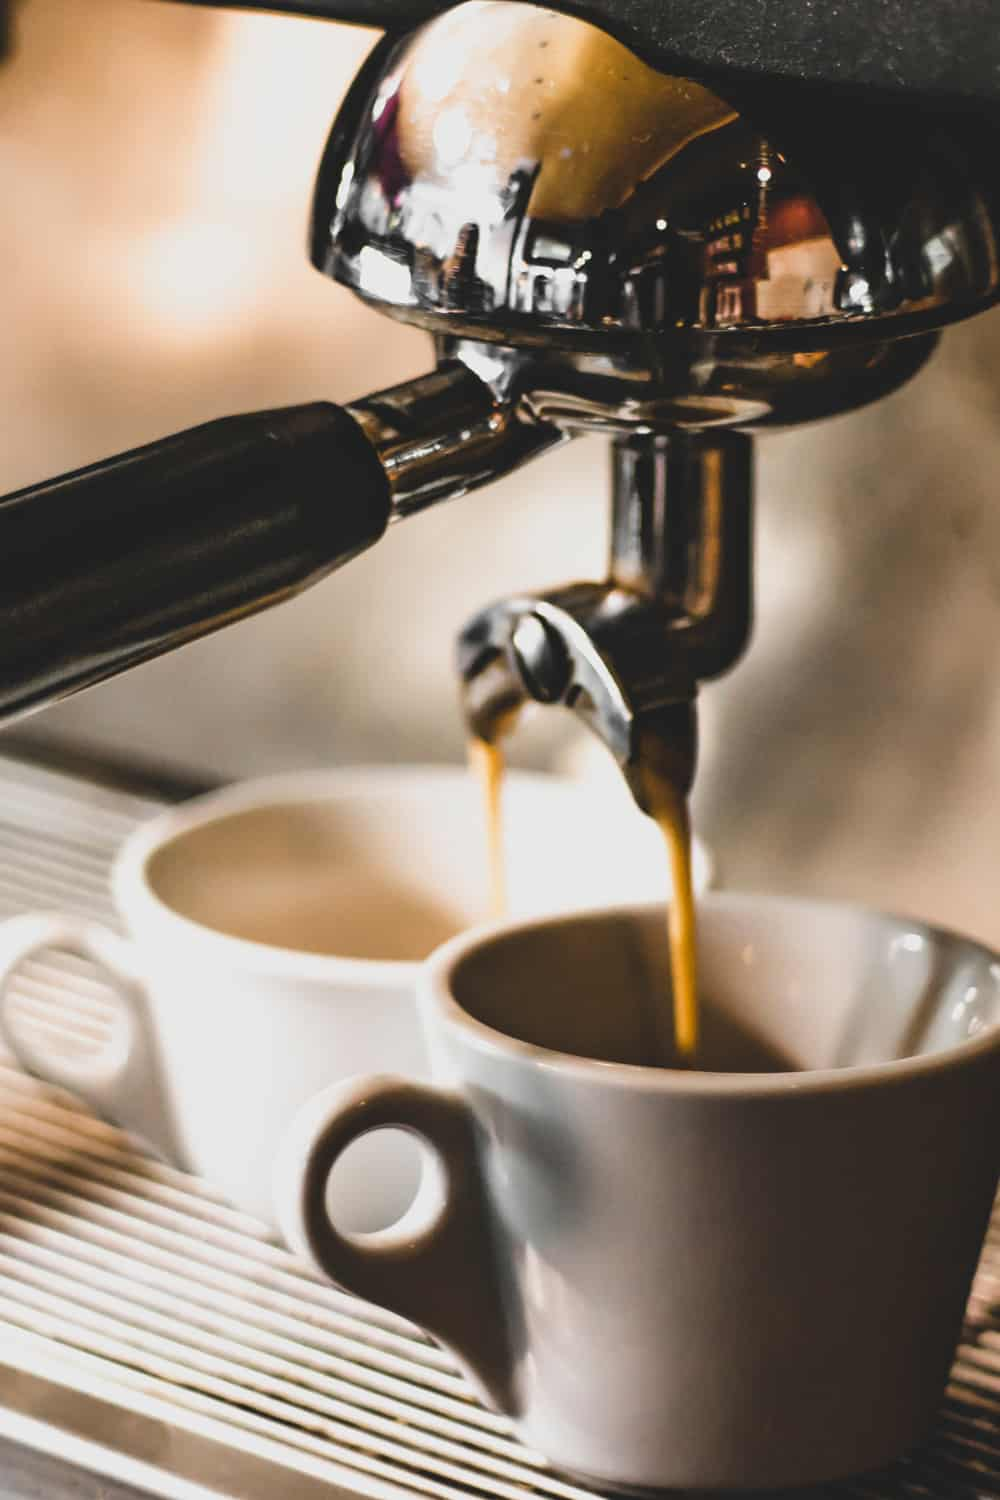 3 Easy Ways to Make Espresso With a Coffee Maker